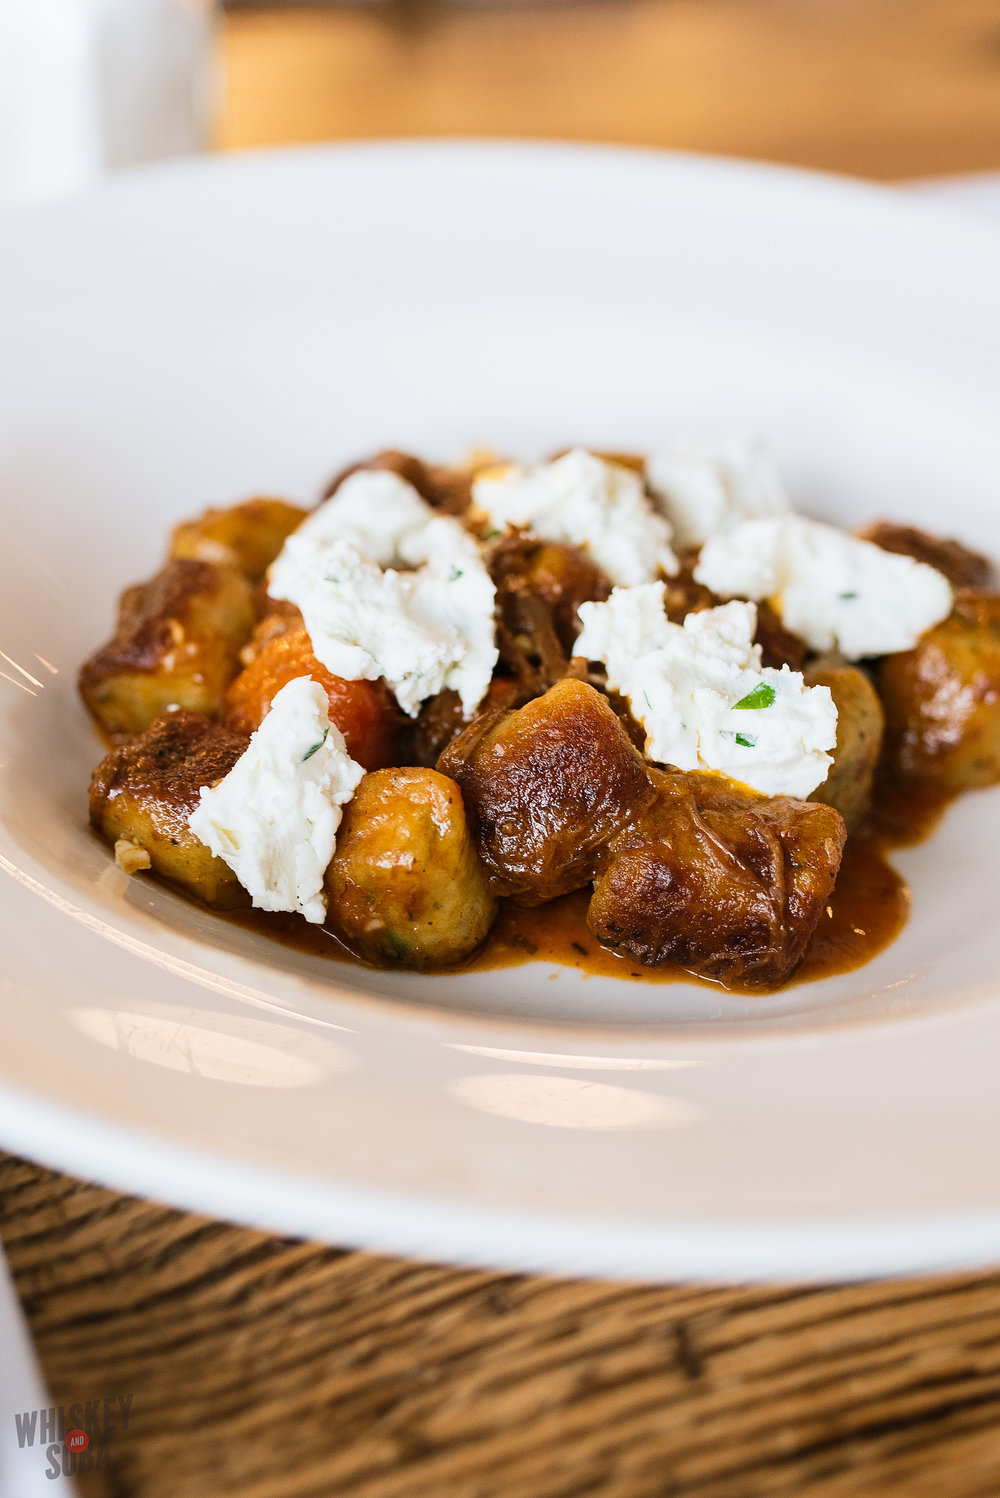 olive and oak's gnocchi